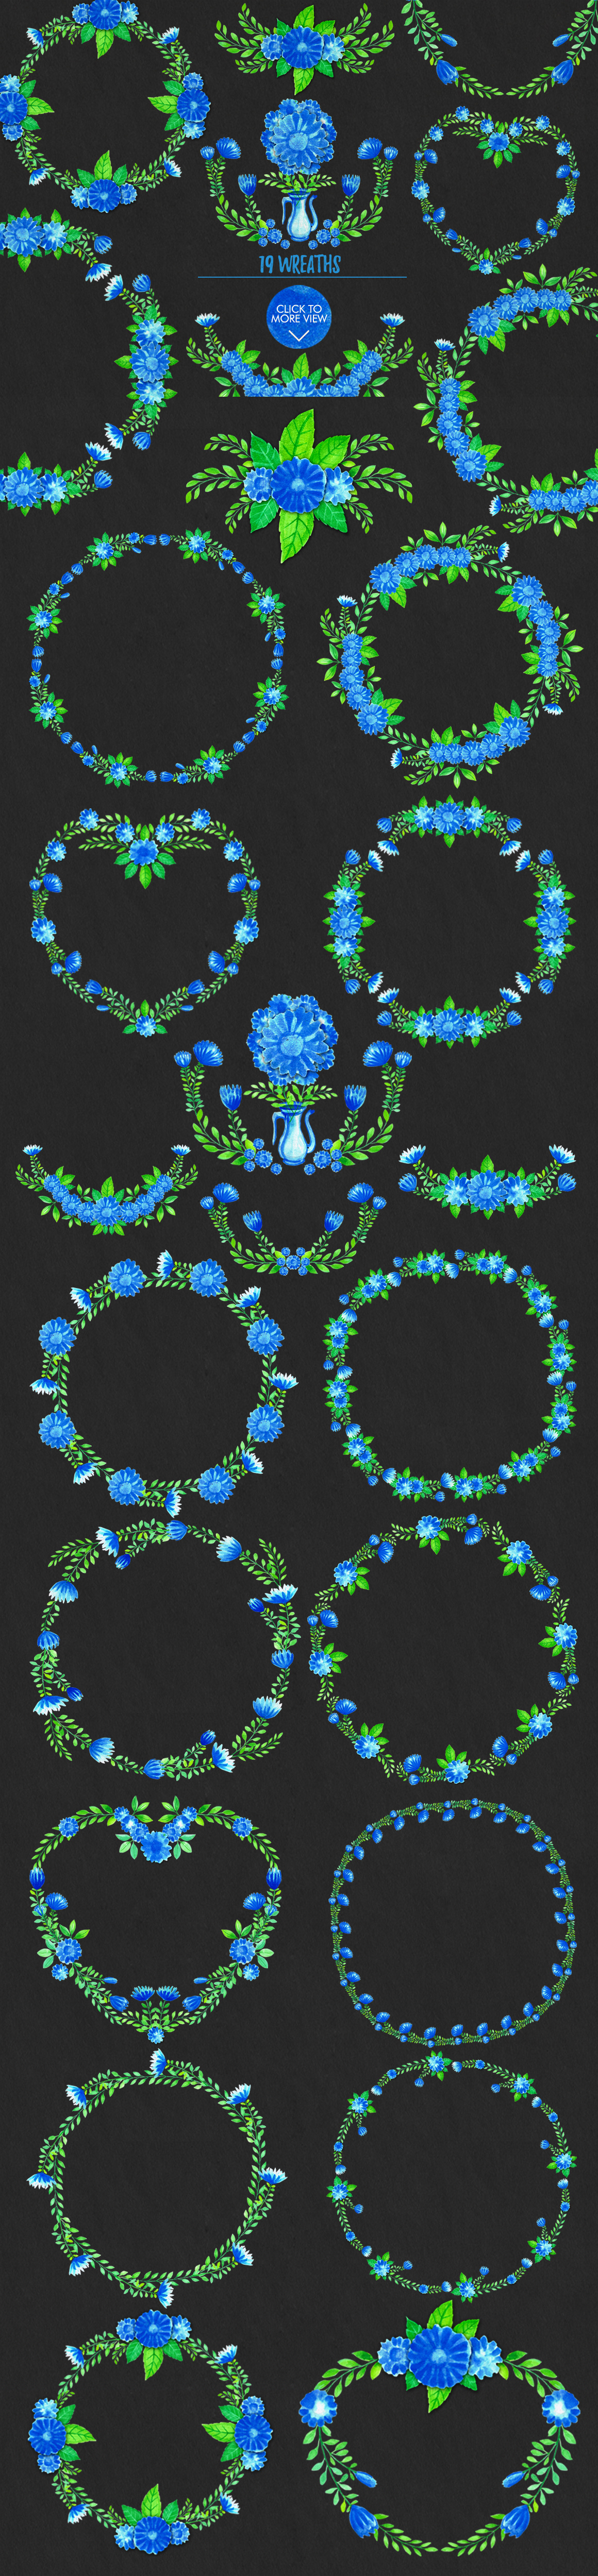 Simple Blue Floral example image 5